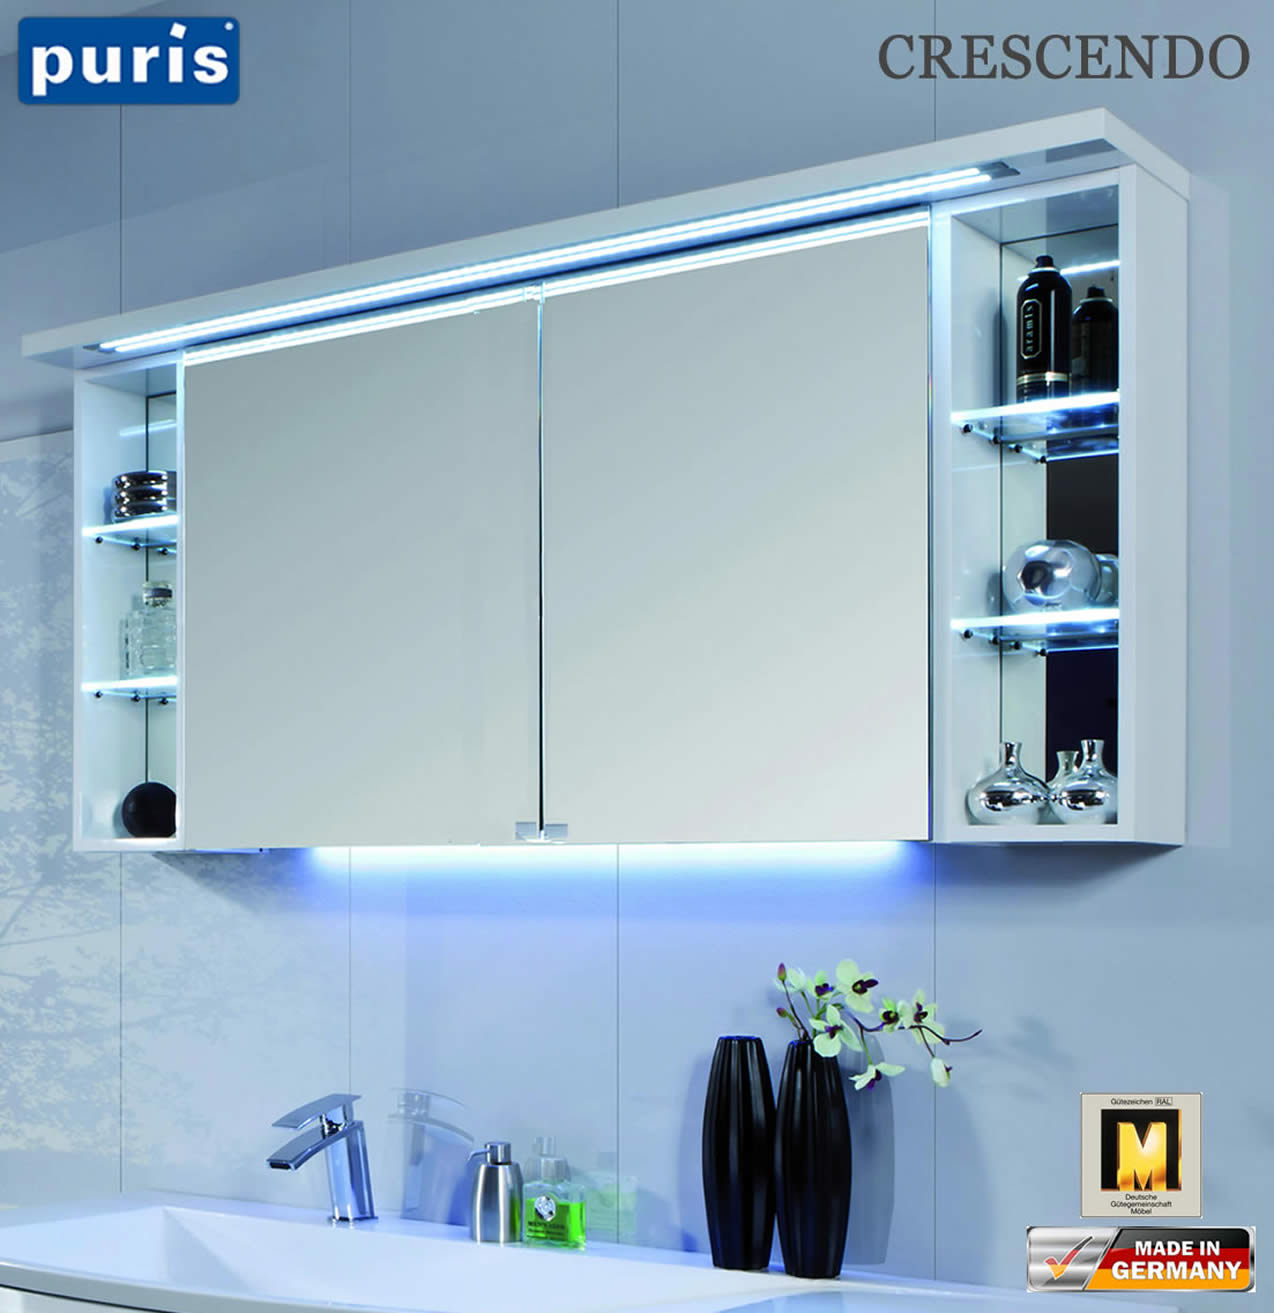 puris crescendo led spiegelschrank 140 cm s2a431426r impuls home. Black Bedroom Furniture Sets. Home Design Ideas